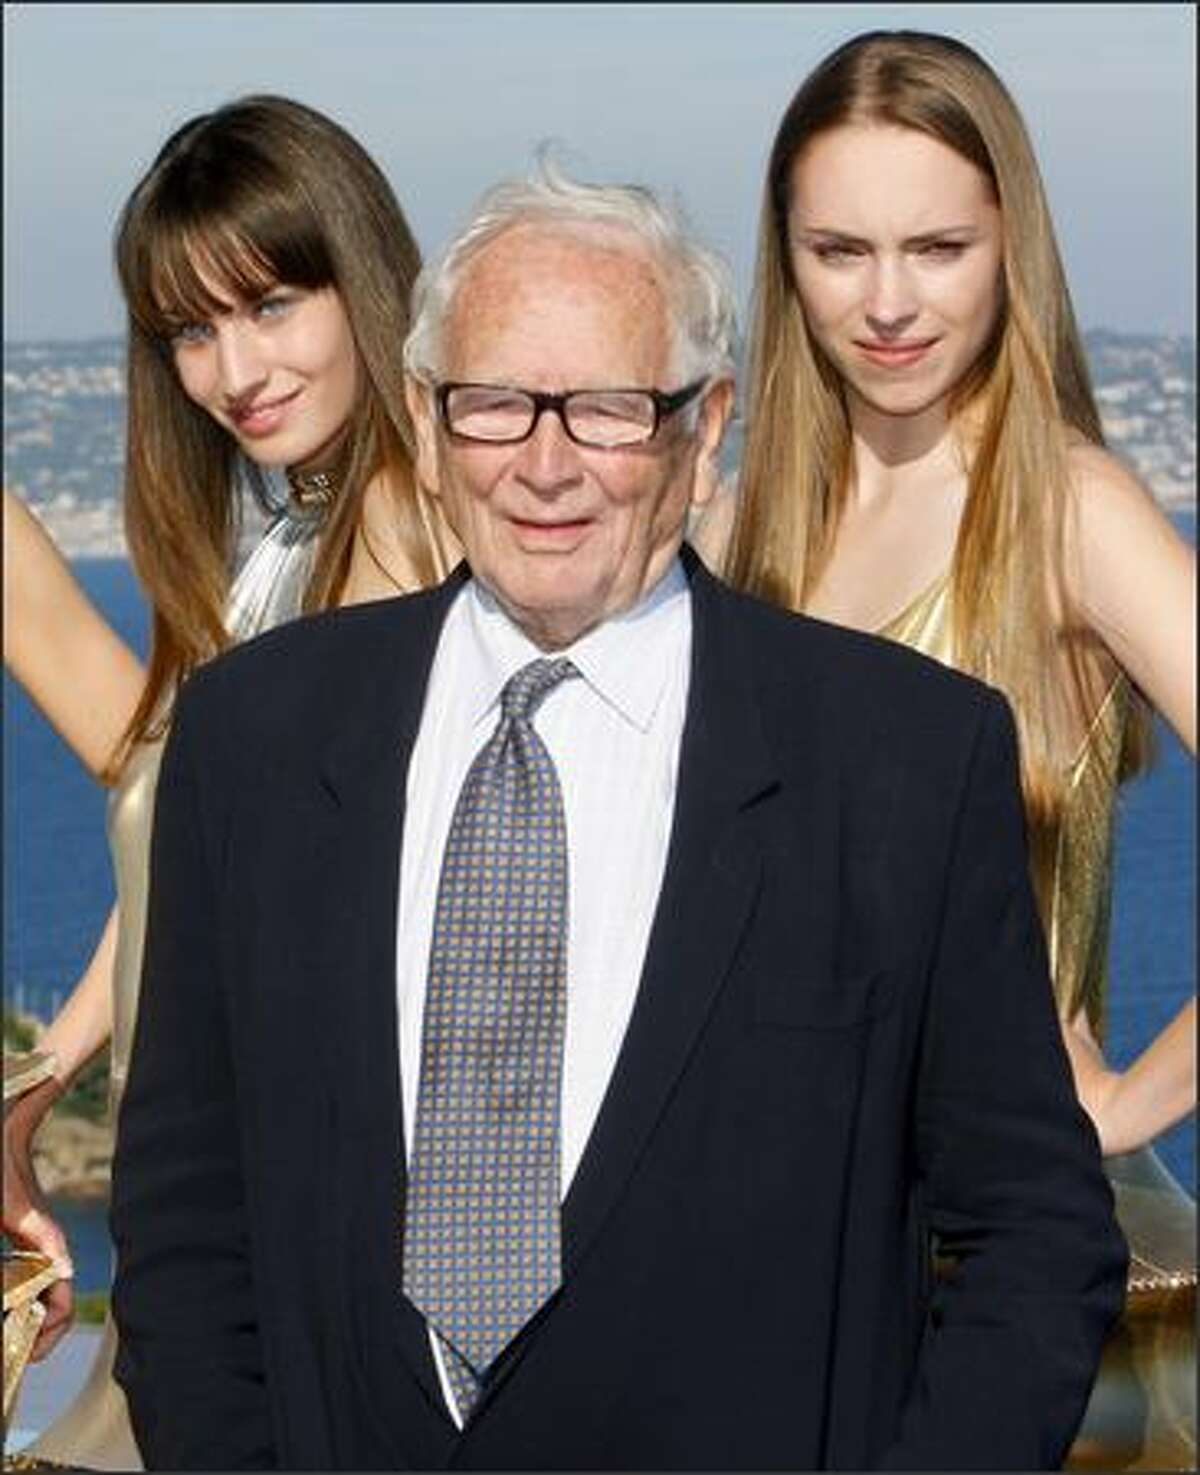 French designer Pierre Cardin poses with models after is spring/summer 2009 ready-to-wear collection show in Theoule-Sur-Mer, southern France, on Monday.